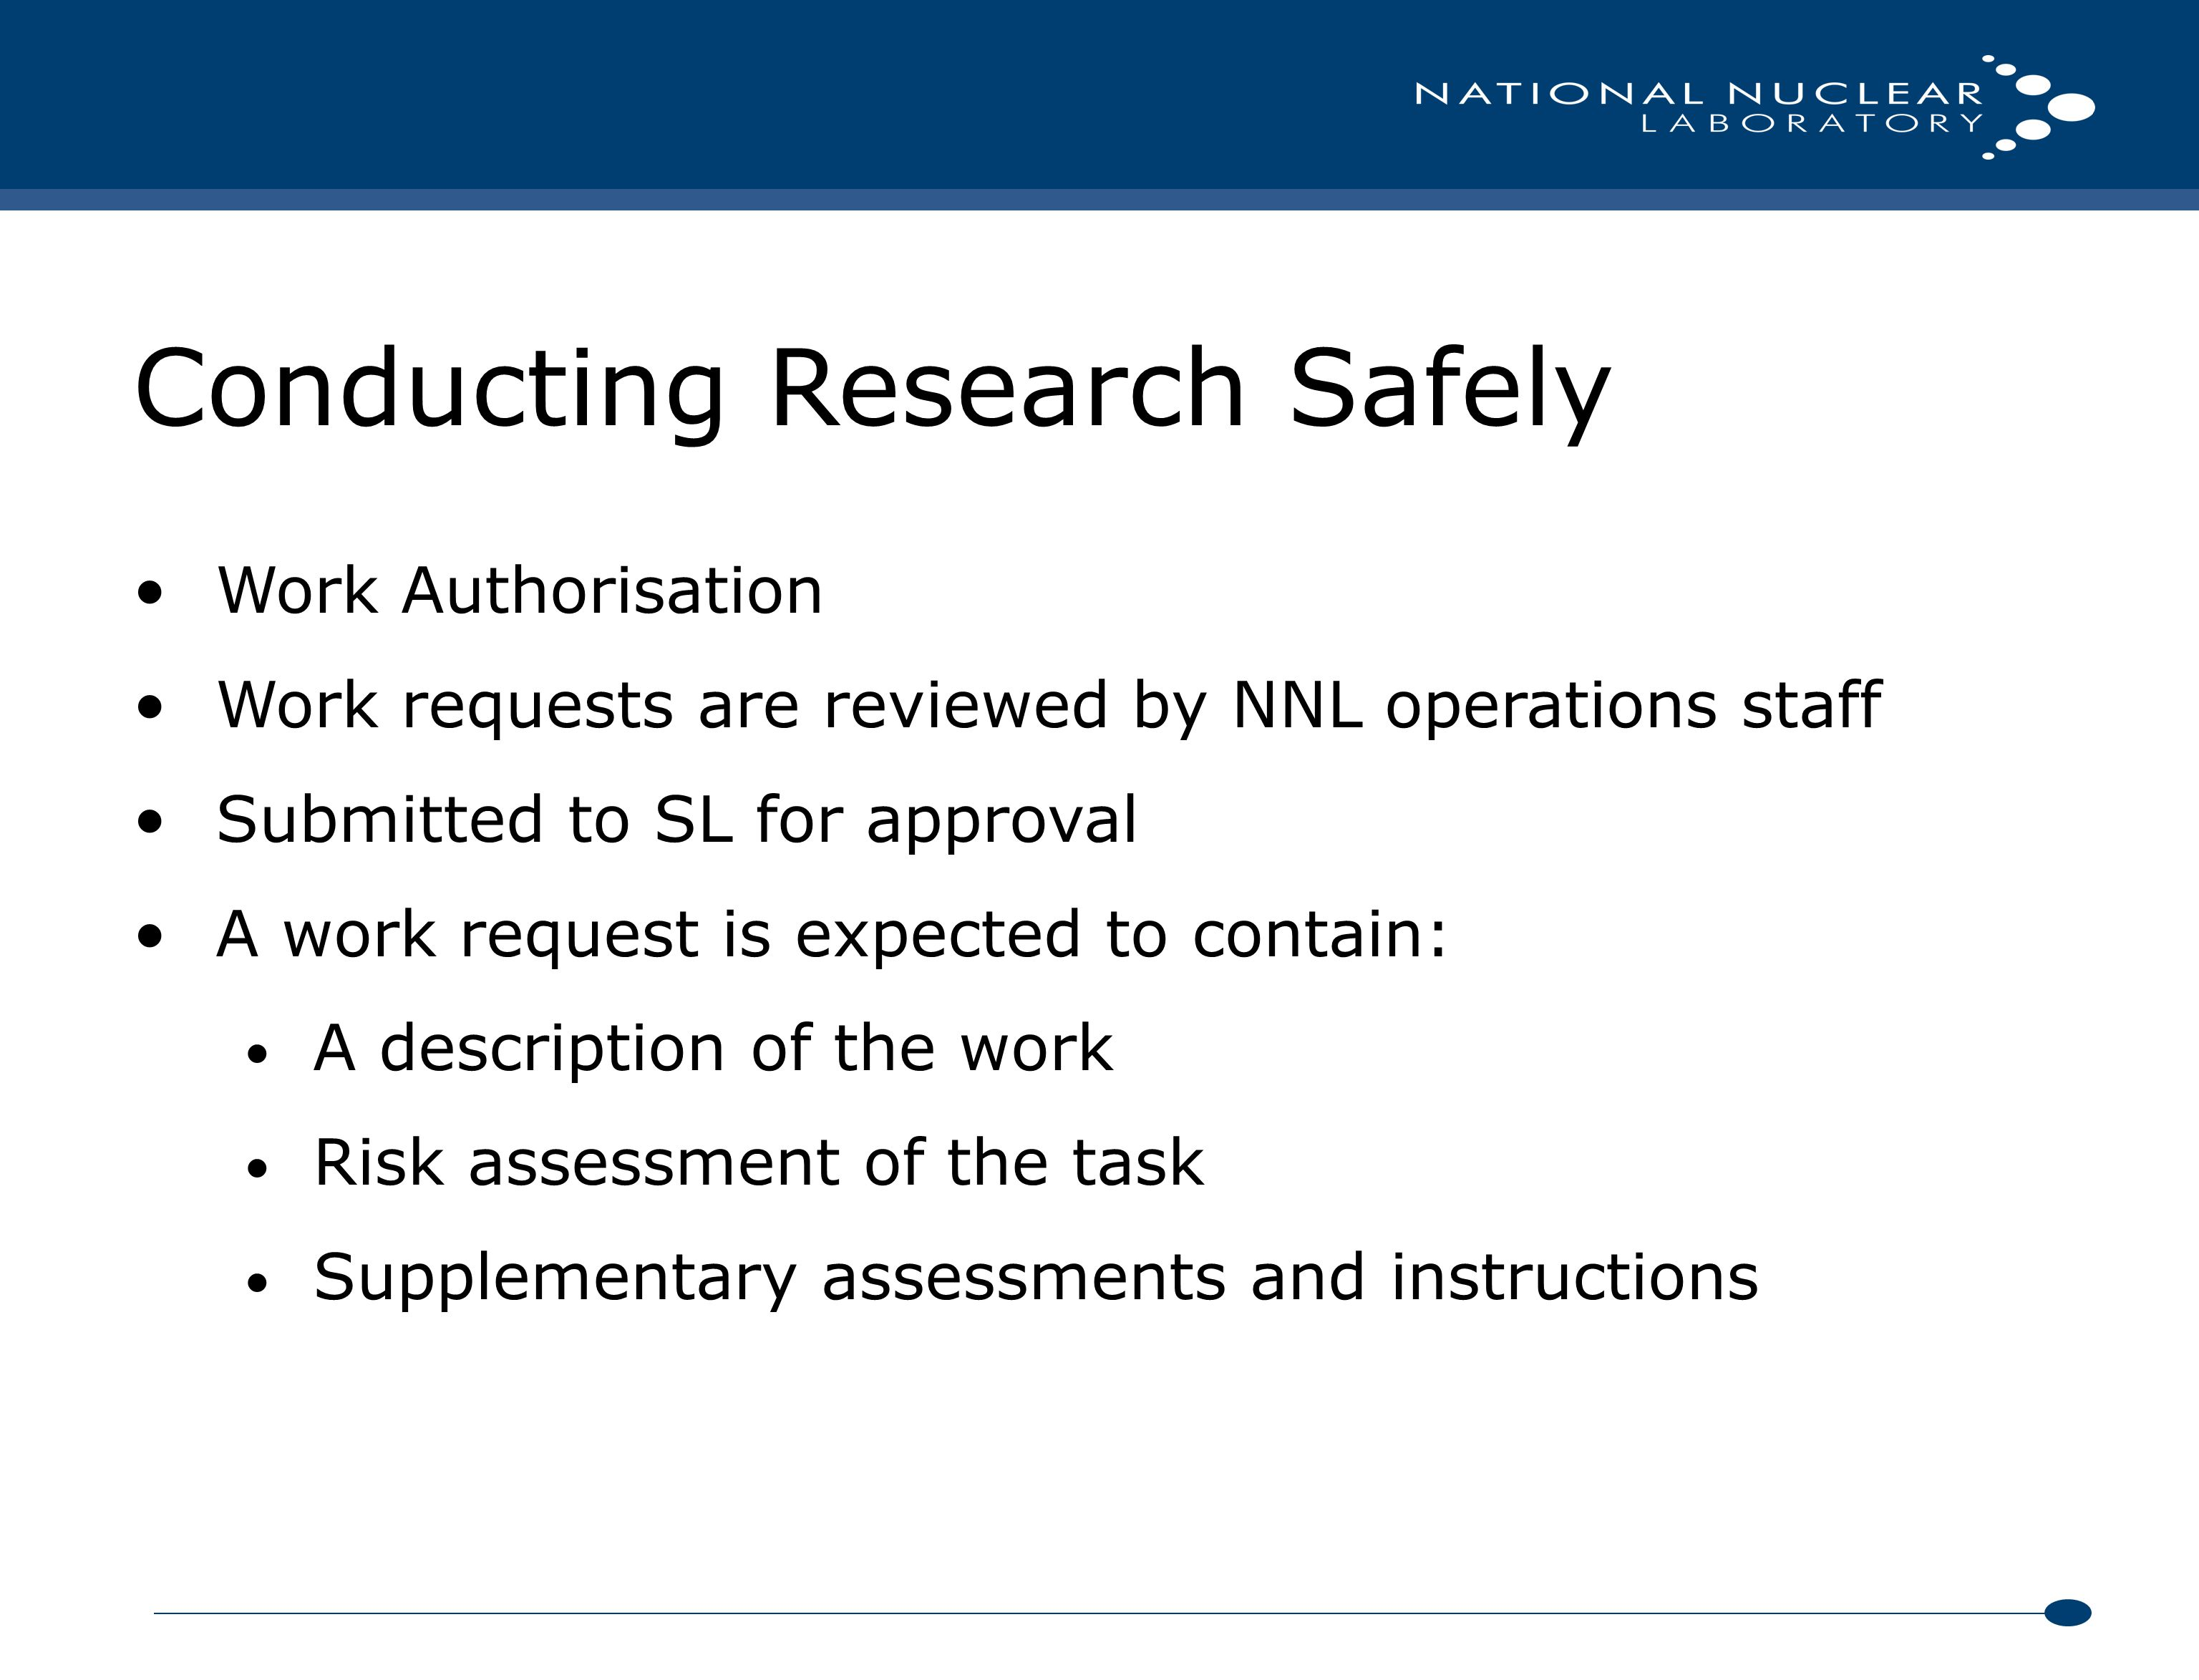 Conducting Research Safely Work Authorisation Work requests are reviewed by NNL operations staff Submitted to SL for approval A work request is expected to contain: A description of the work Risk assessment of the task Supplementary assessments and instructions